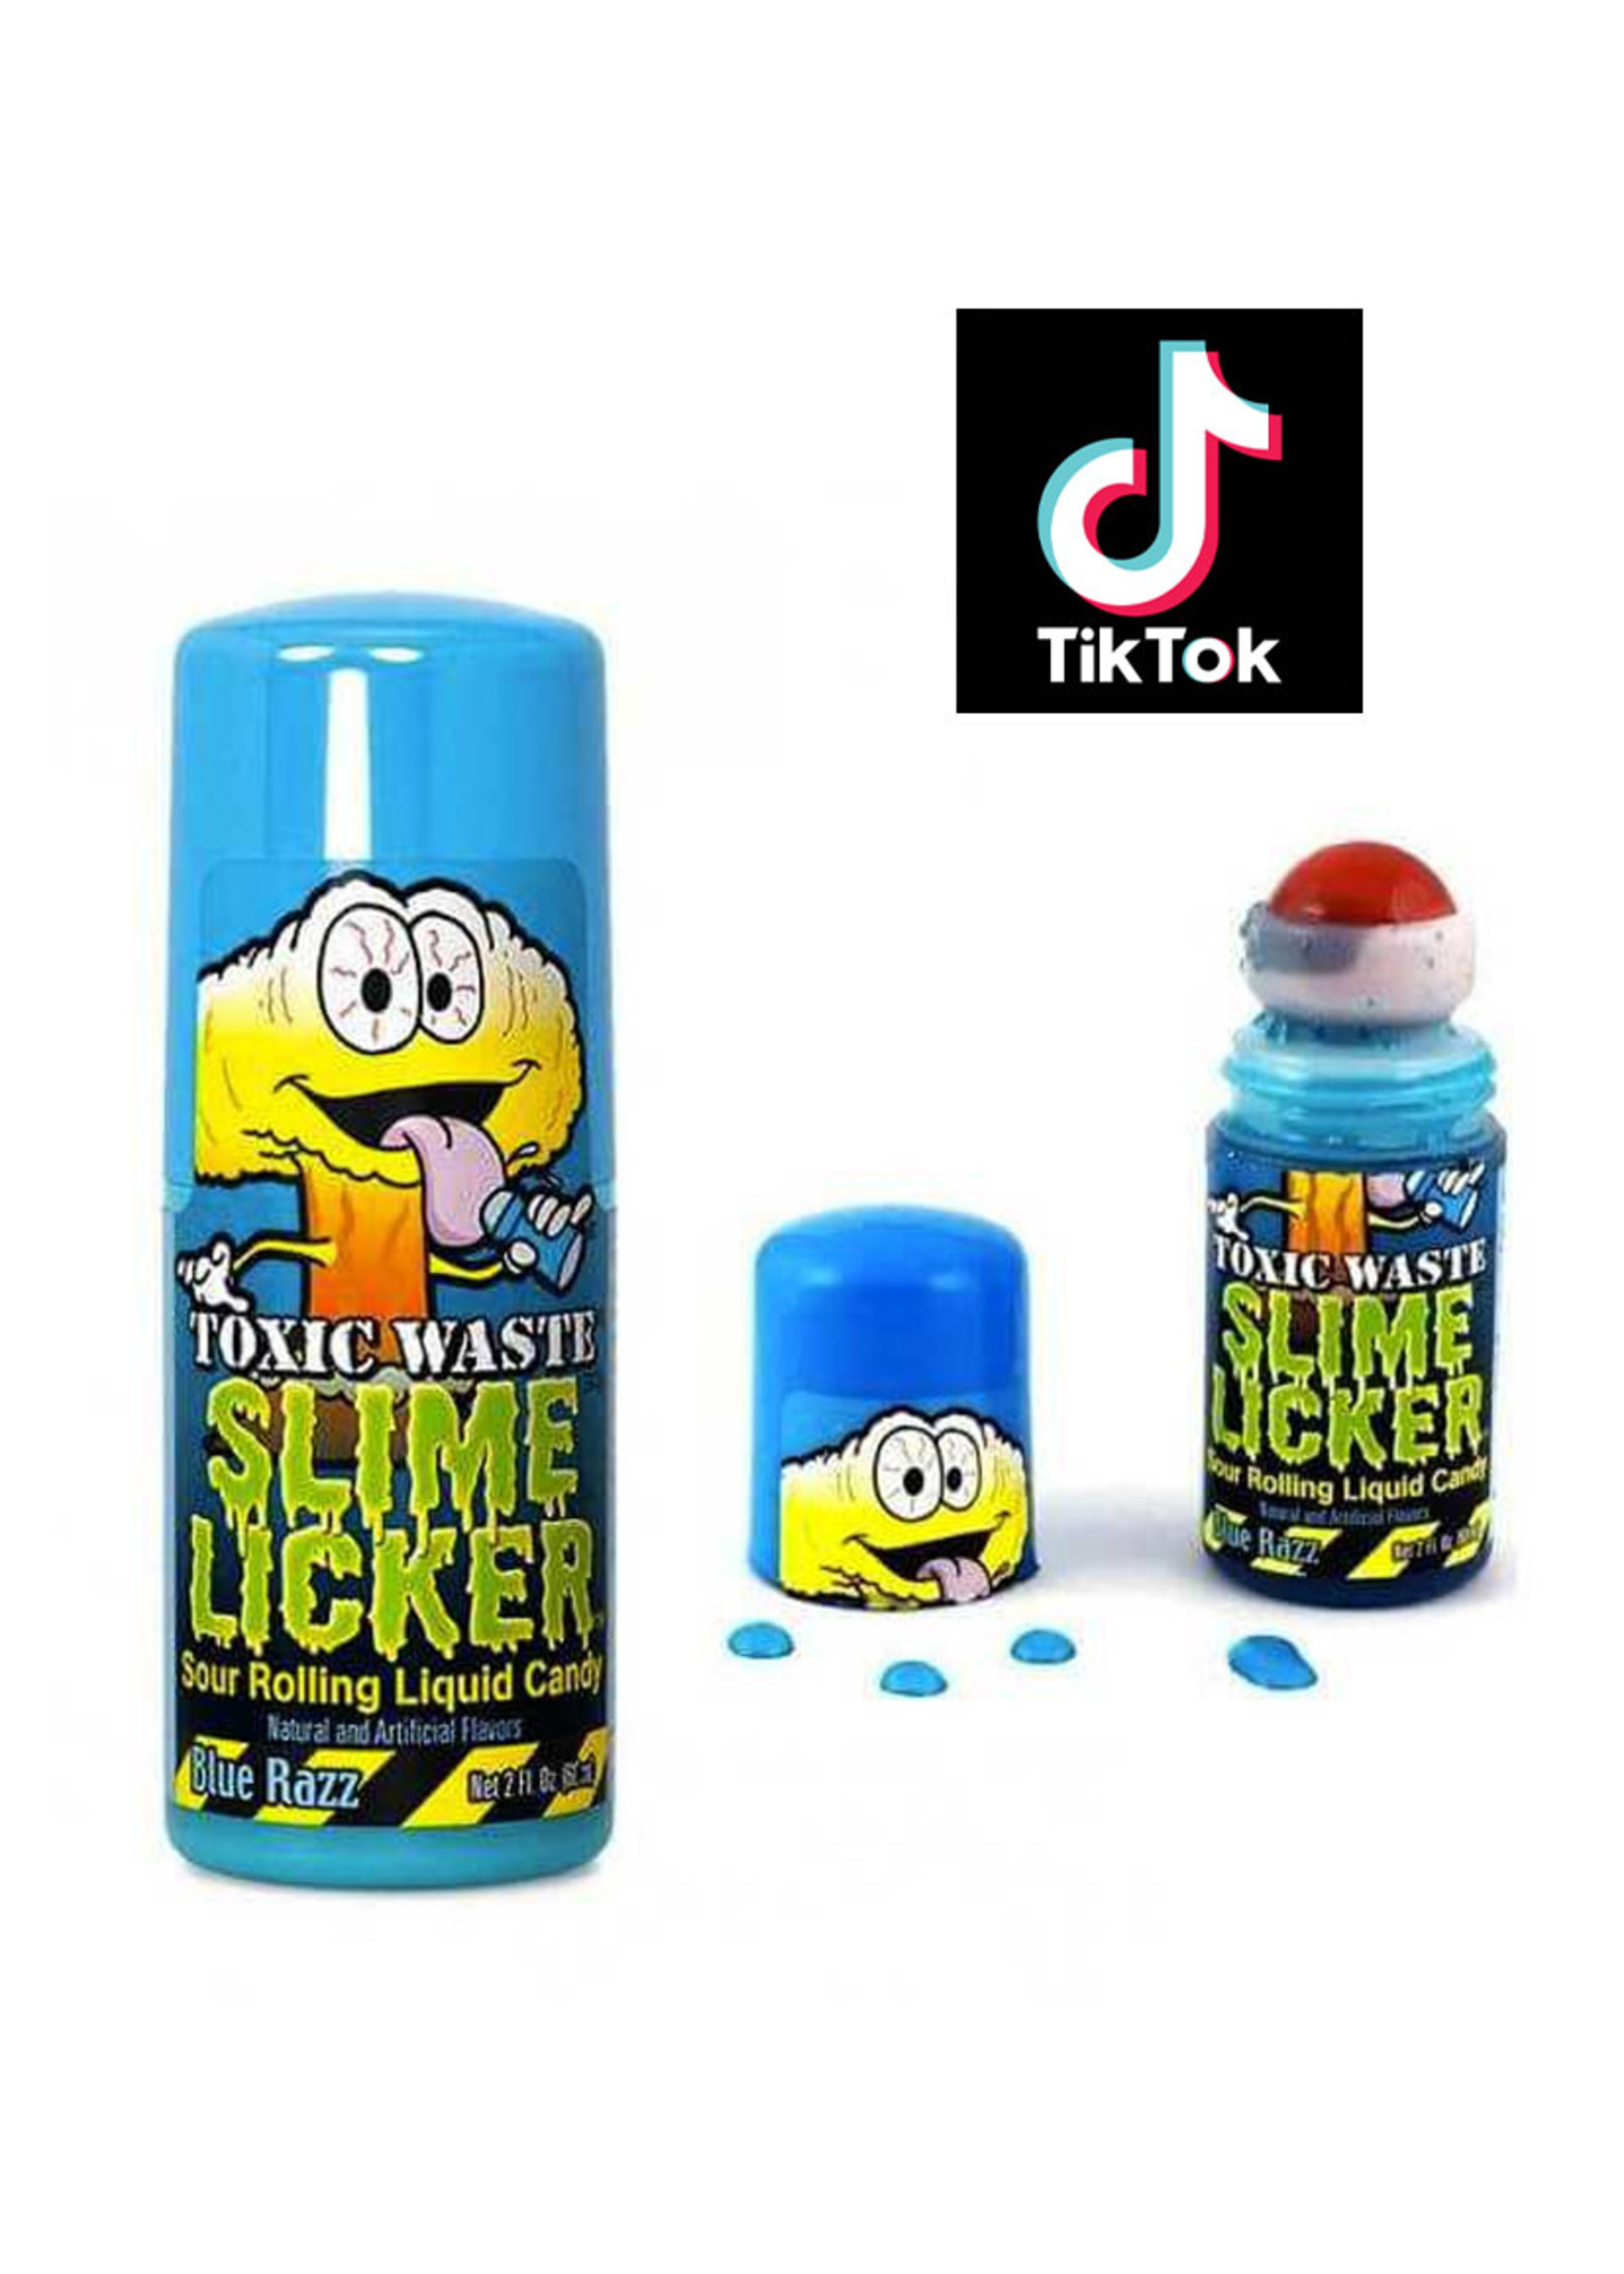 Toxic Waste Slime Licker Sour Liquid Candy - Blue Razz